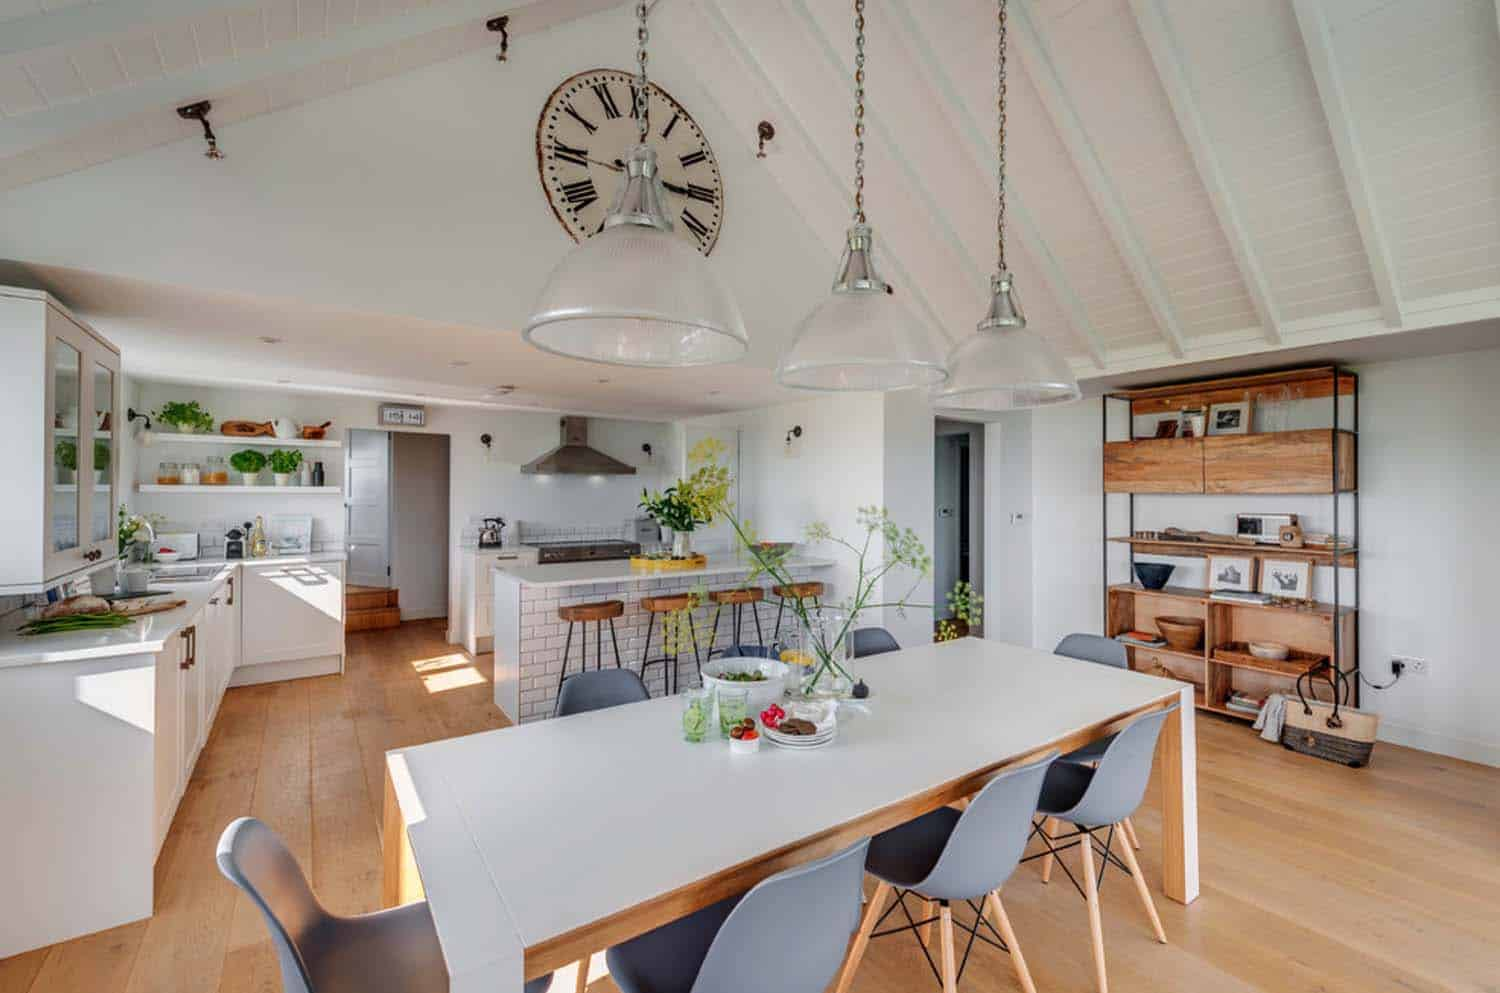 seaside-bungalow-renovation-woodford-architecture-06-1-kindesign